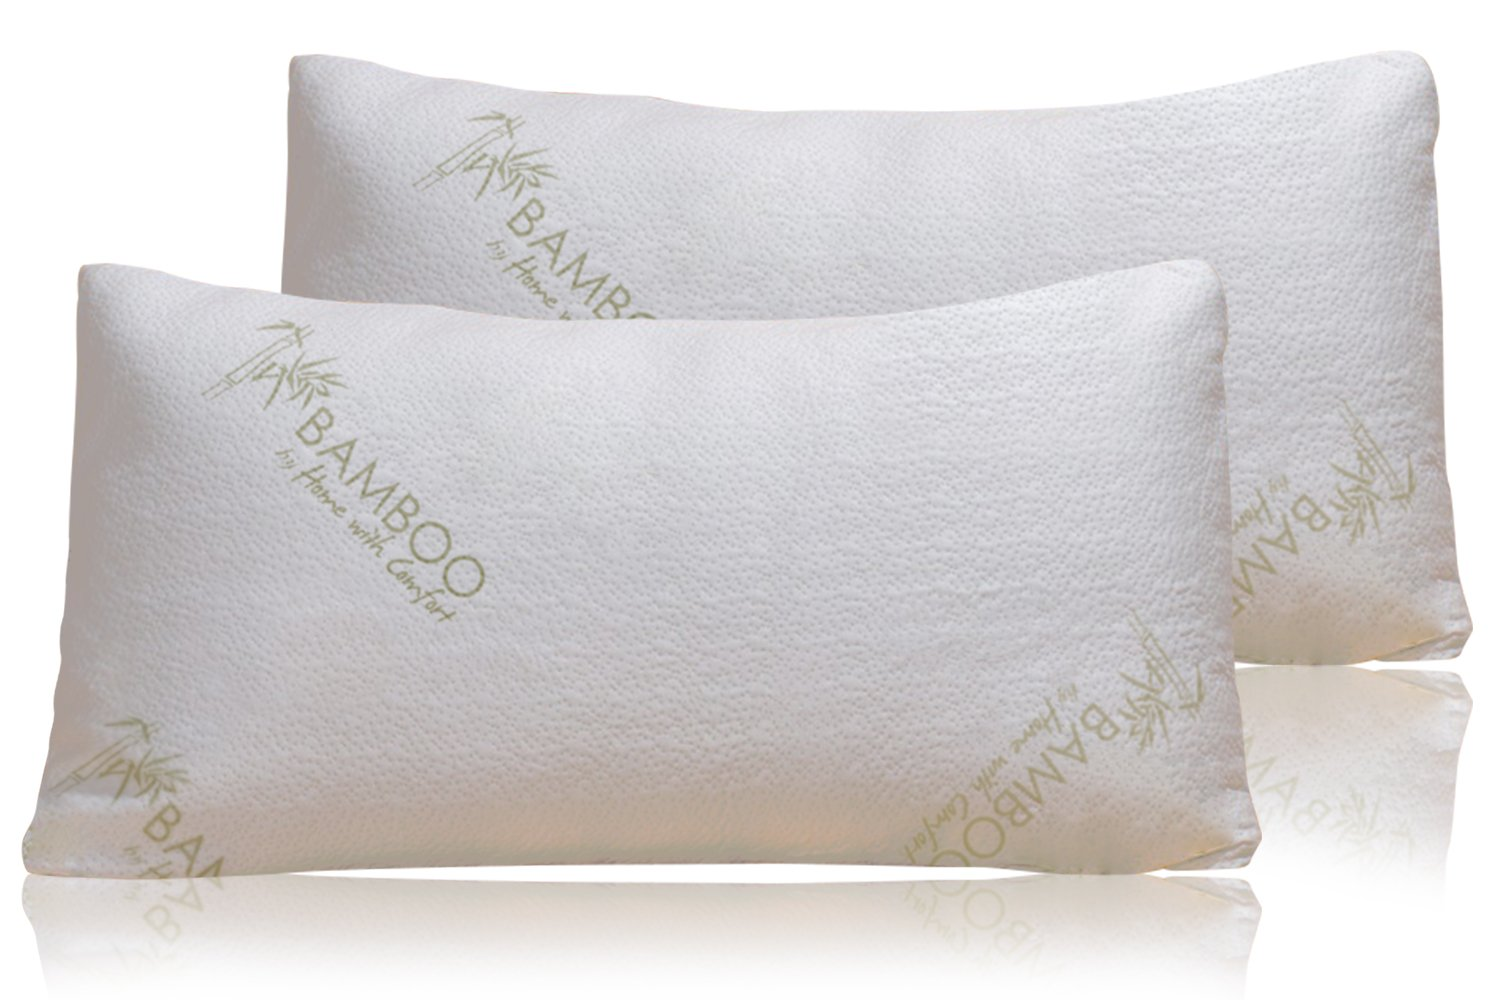 Bamboo Pillow Shredded Memory Foam Stay Cool Removable Cover With Zipper Hotel Quality Hypoallergenic Pillow Relieves Snoring, Insomnia, Neck Pain, TMJ, and Migraines (Queen) by Home With Comfort B017ODOJMU クイーン クイーン